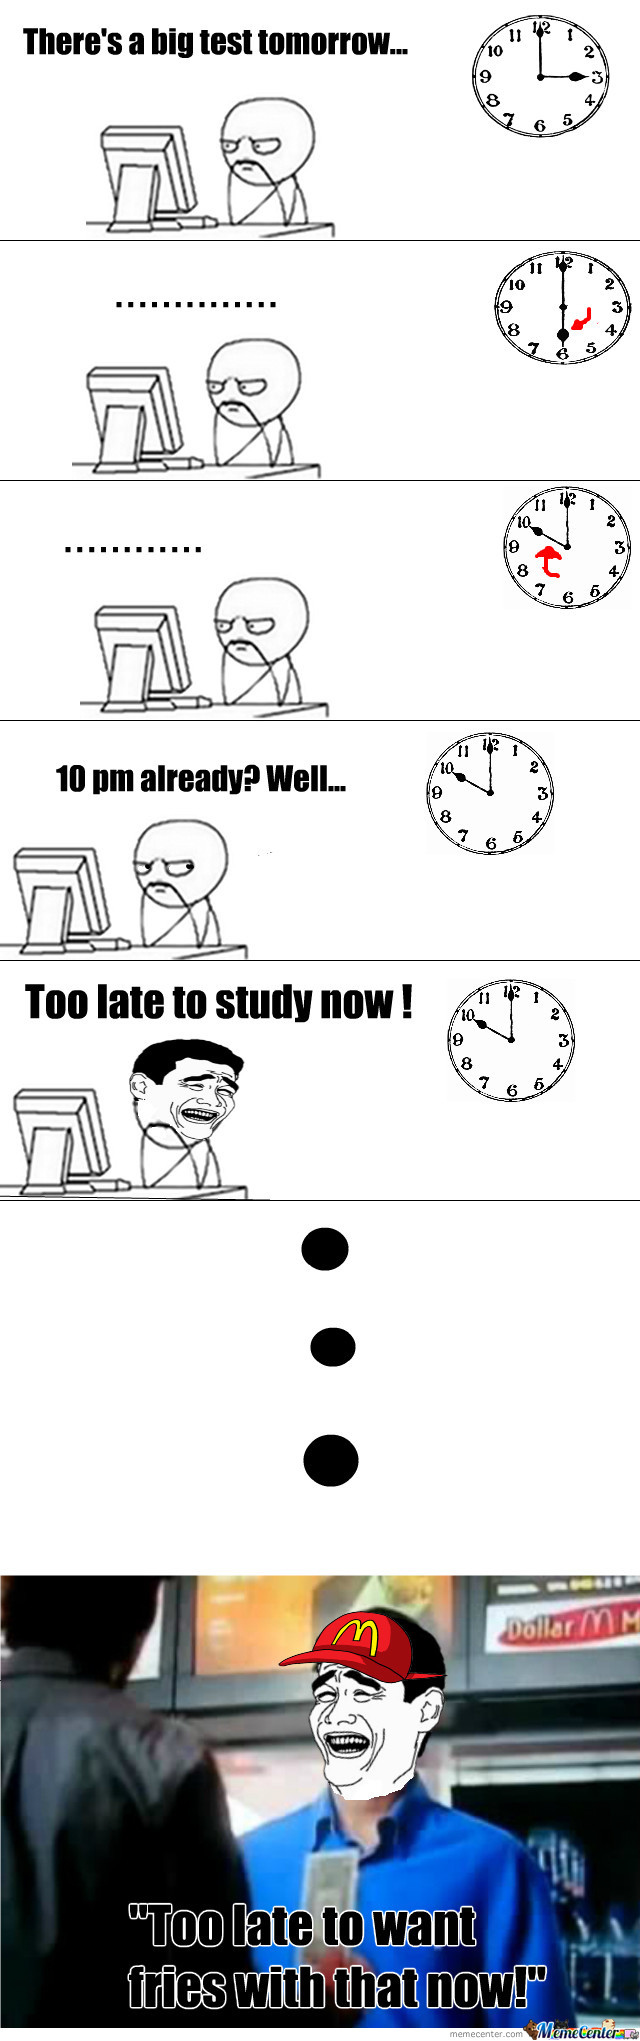 When Ever I Try To Study...